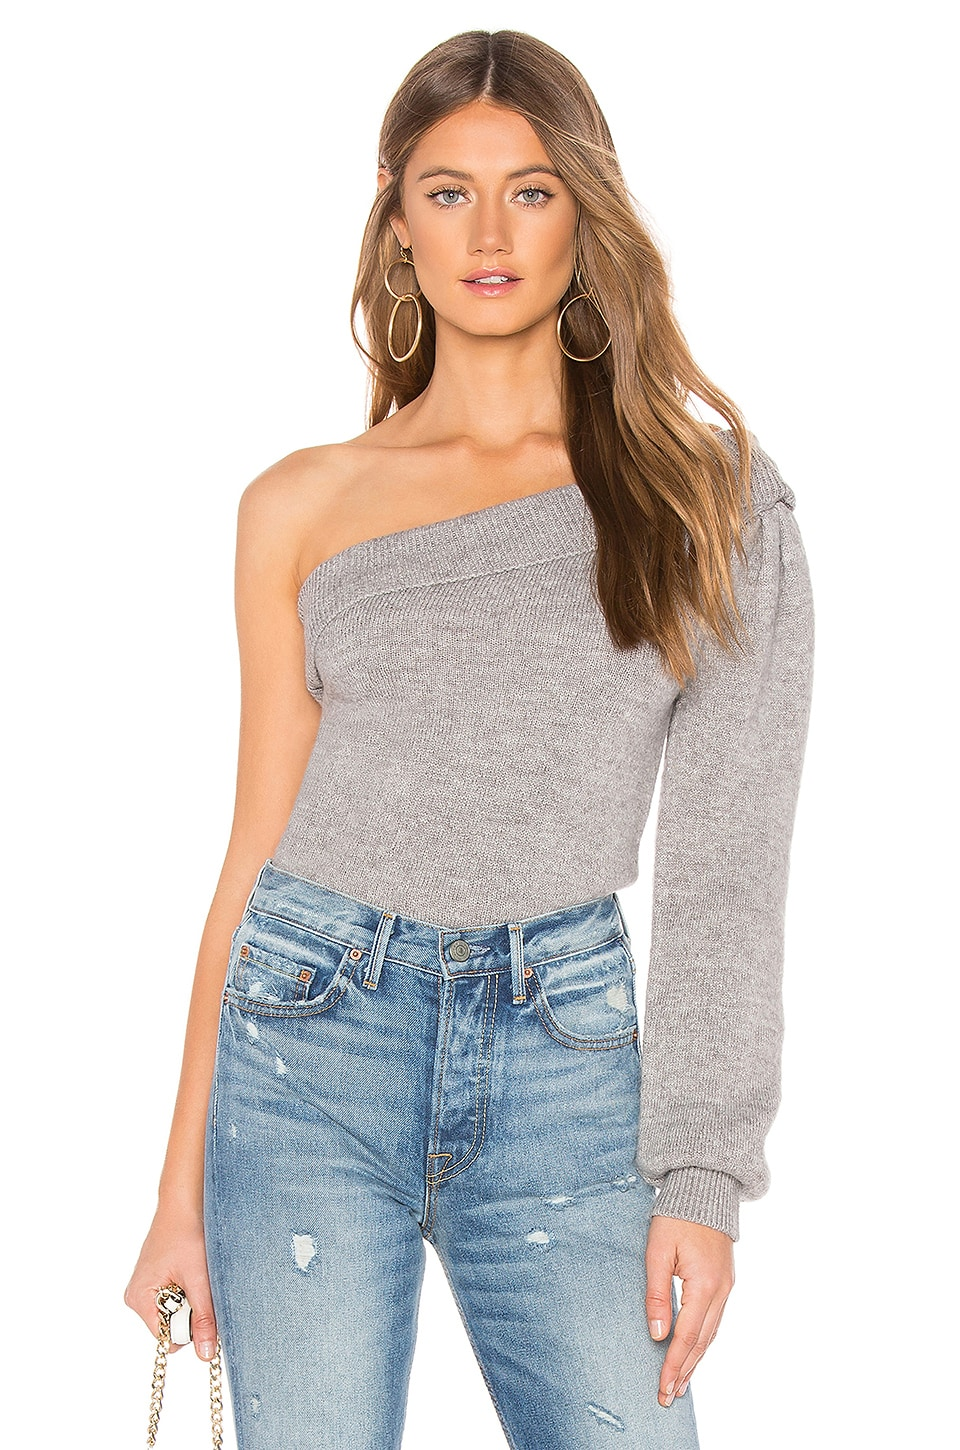 Tularosa Clover Sweater in Solid Grey